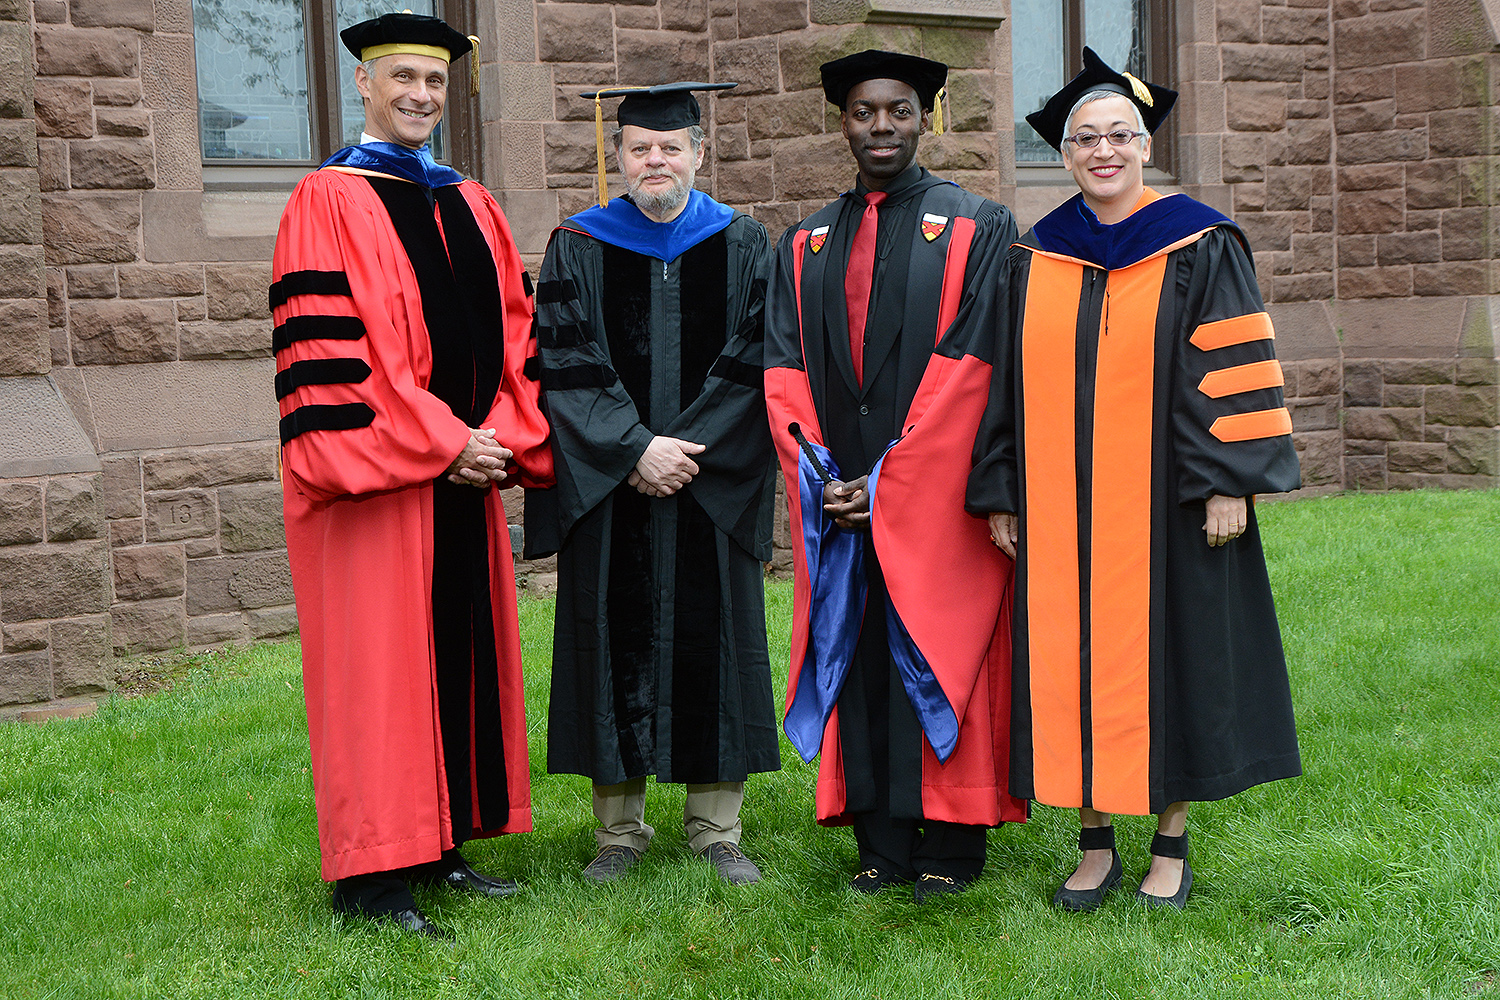 Wesleyan President Michael Roth honored James Lipton, professor of computer science; Demetrius Eudell, professor of history; and Sally Bachner, associate professor of English with Binswanger Prizes for Excellence in Teaching during the 184th Commencement Ceremony on May 22. (Photo by John Van Vlack)